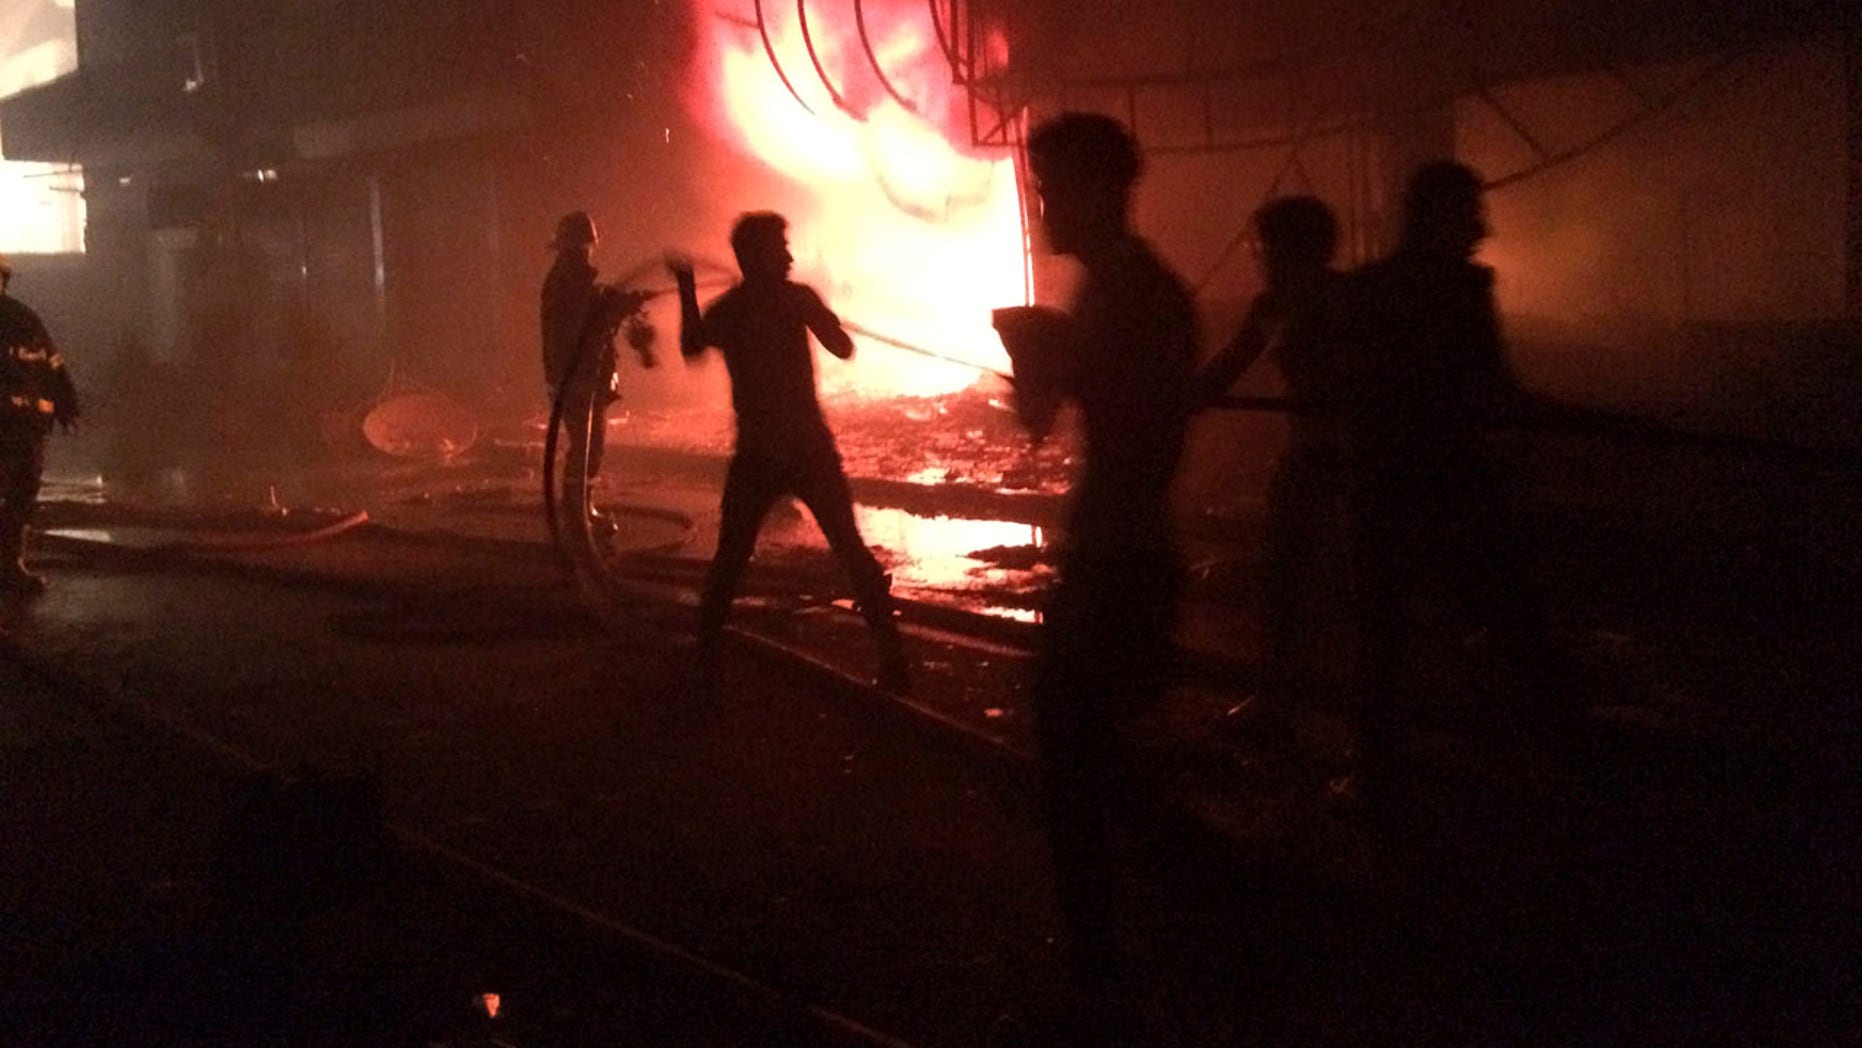 July 3, 2016: Iraqi firefighters extinguish a fire as civilians gather after a car bomb at a commercial area in the Karada neighborhood of Baghdad